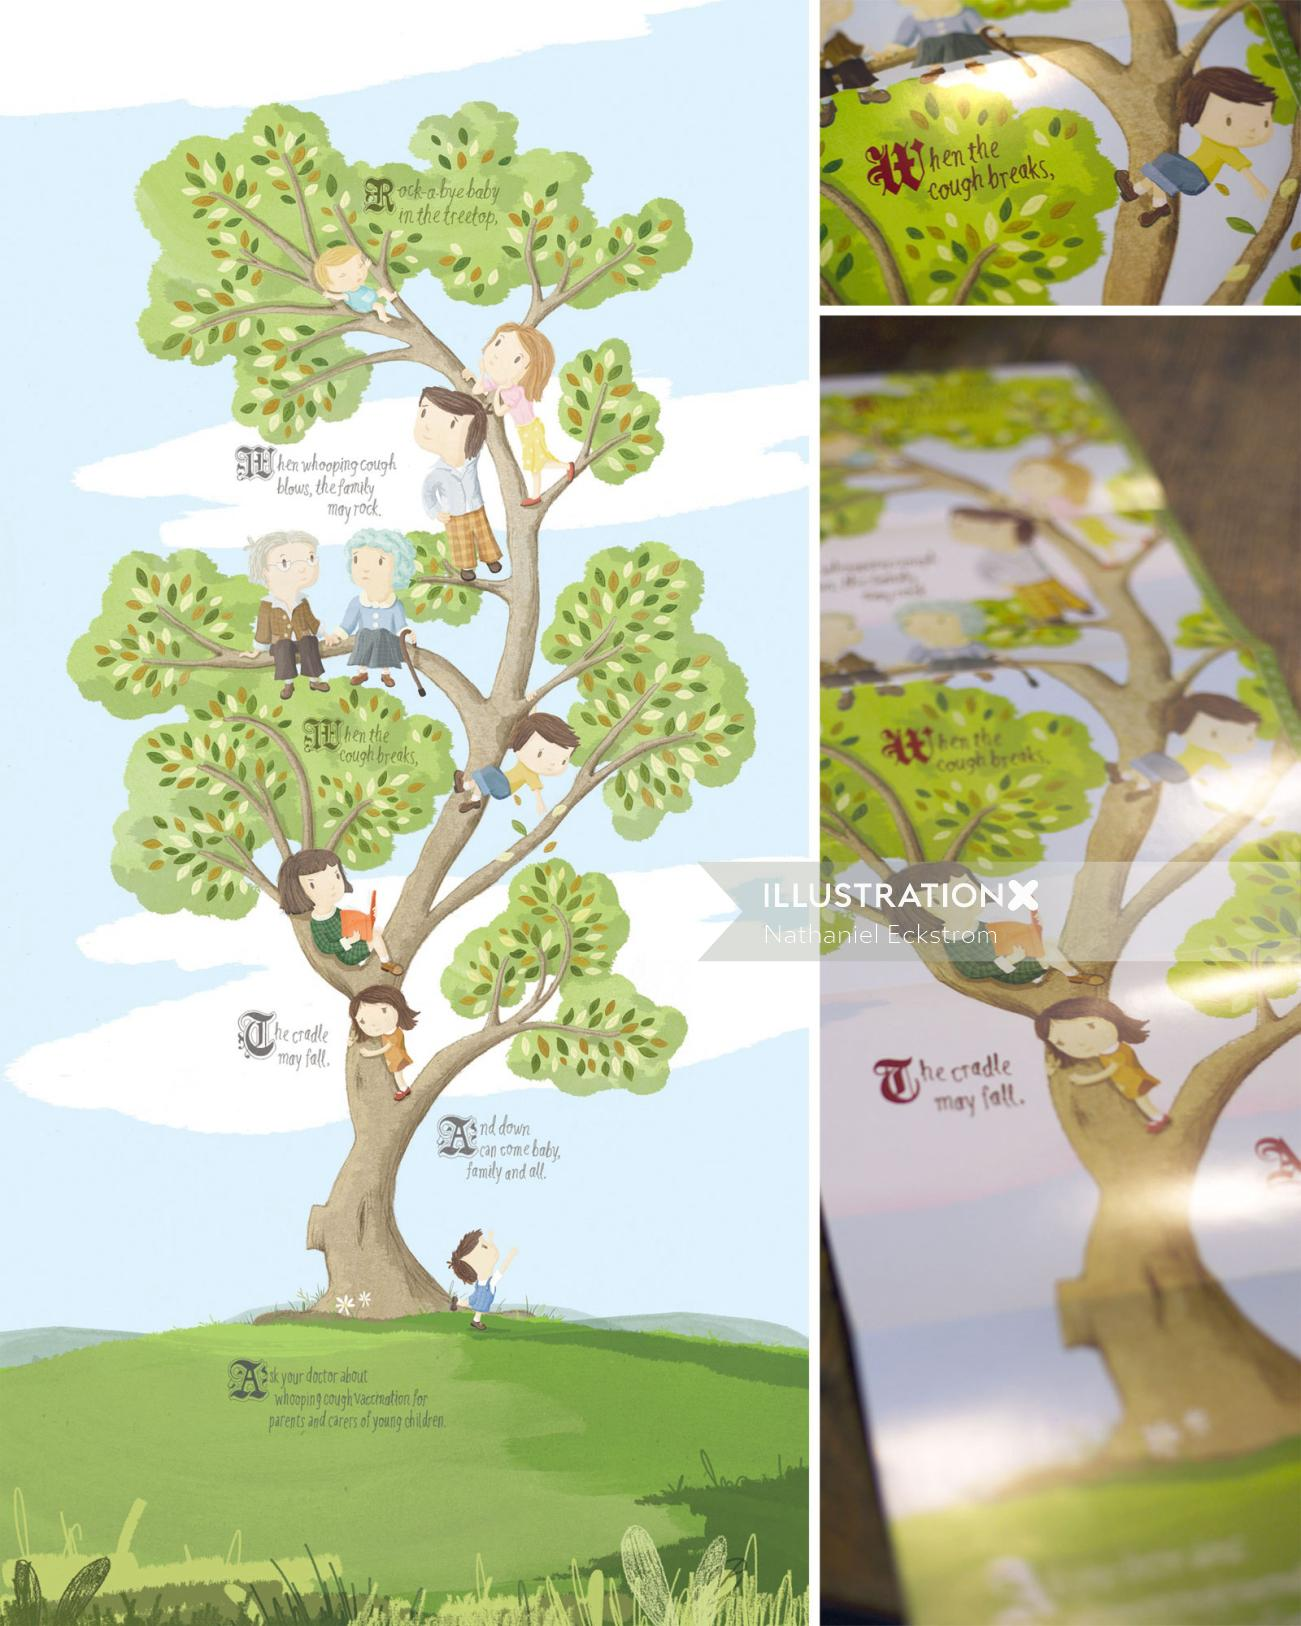 Children's illustration of Kids playing on tree